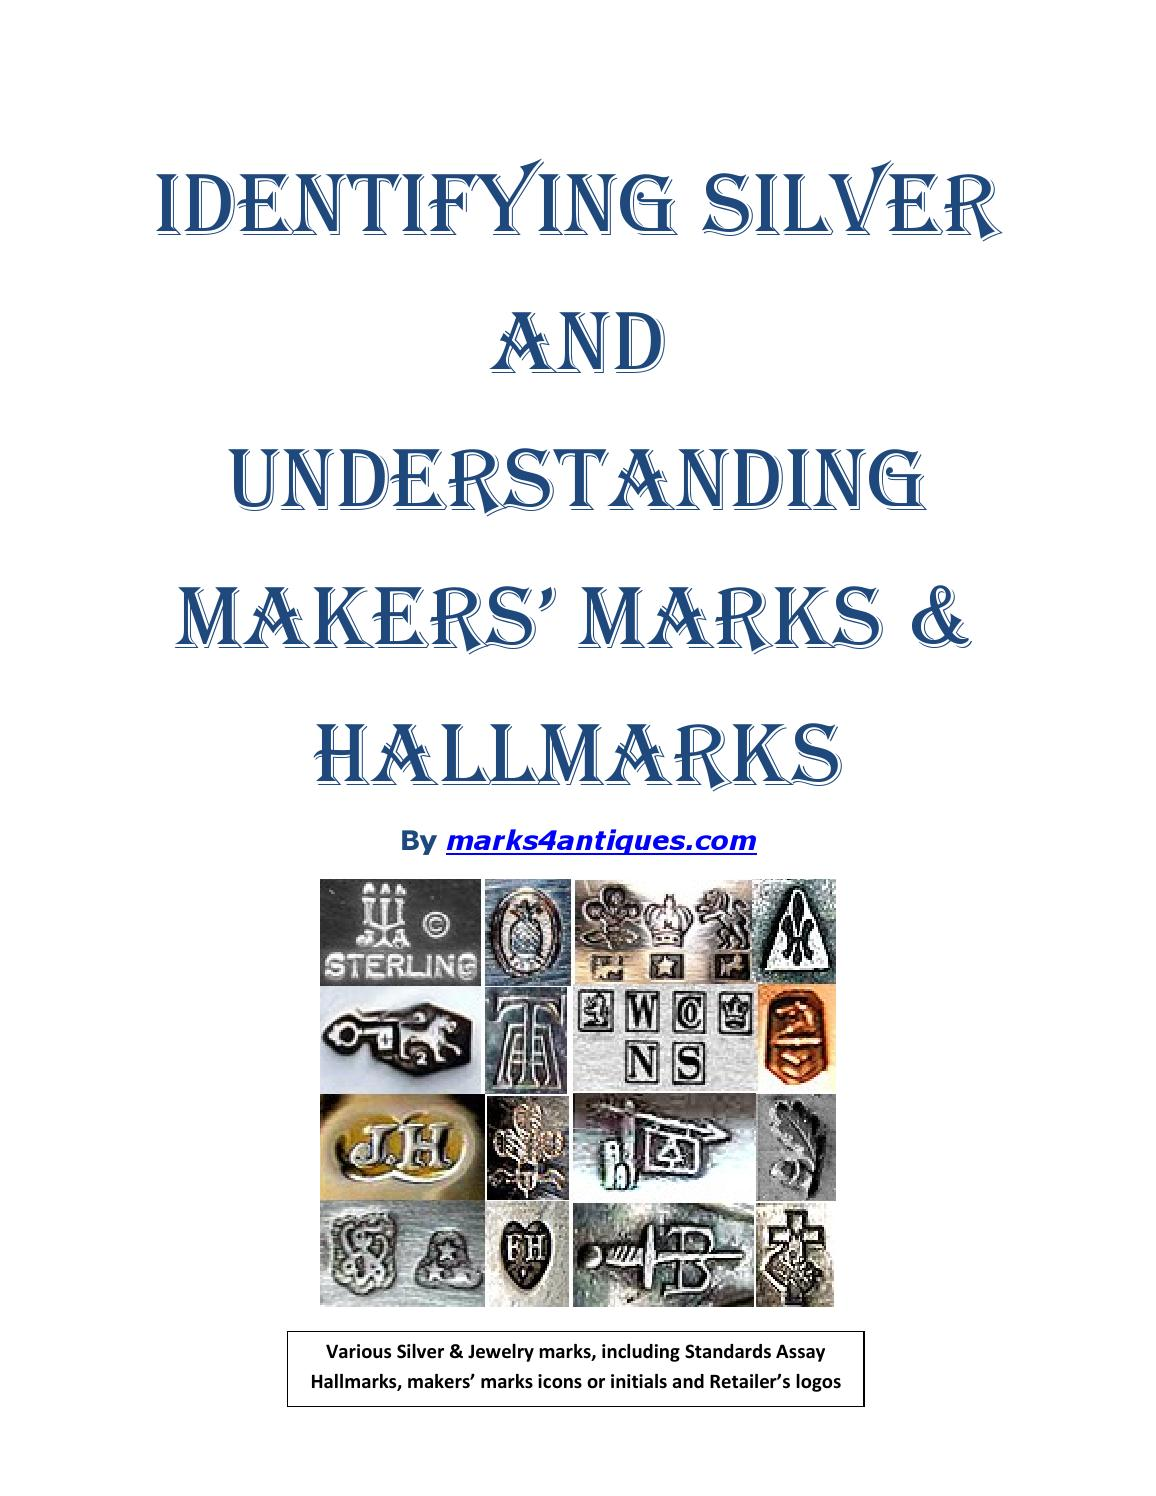 Identifying silver and recognizing makers marks & hallmarks